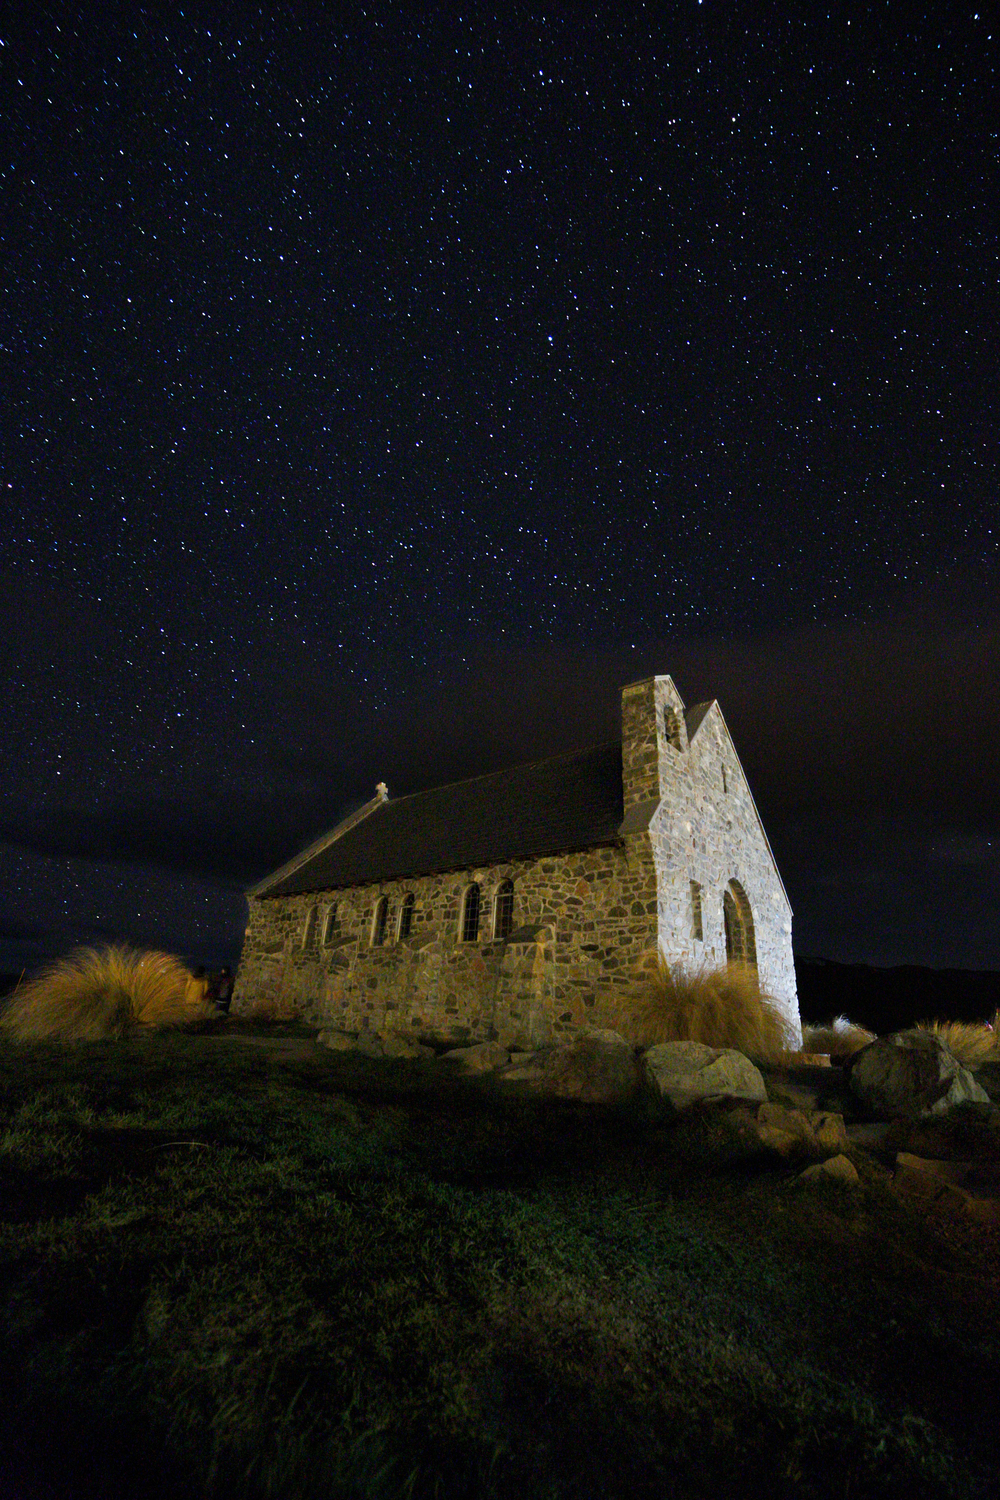 The Church of the Good Shepherd at night under stars, Tekapo.